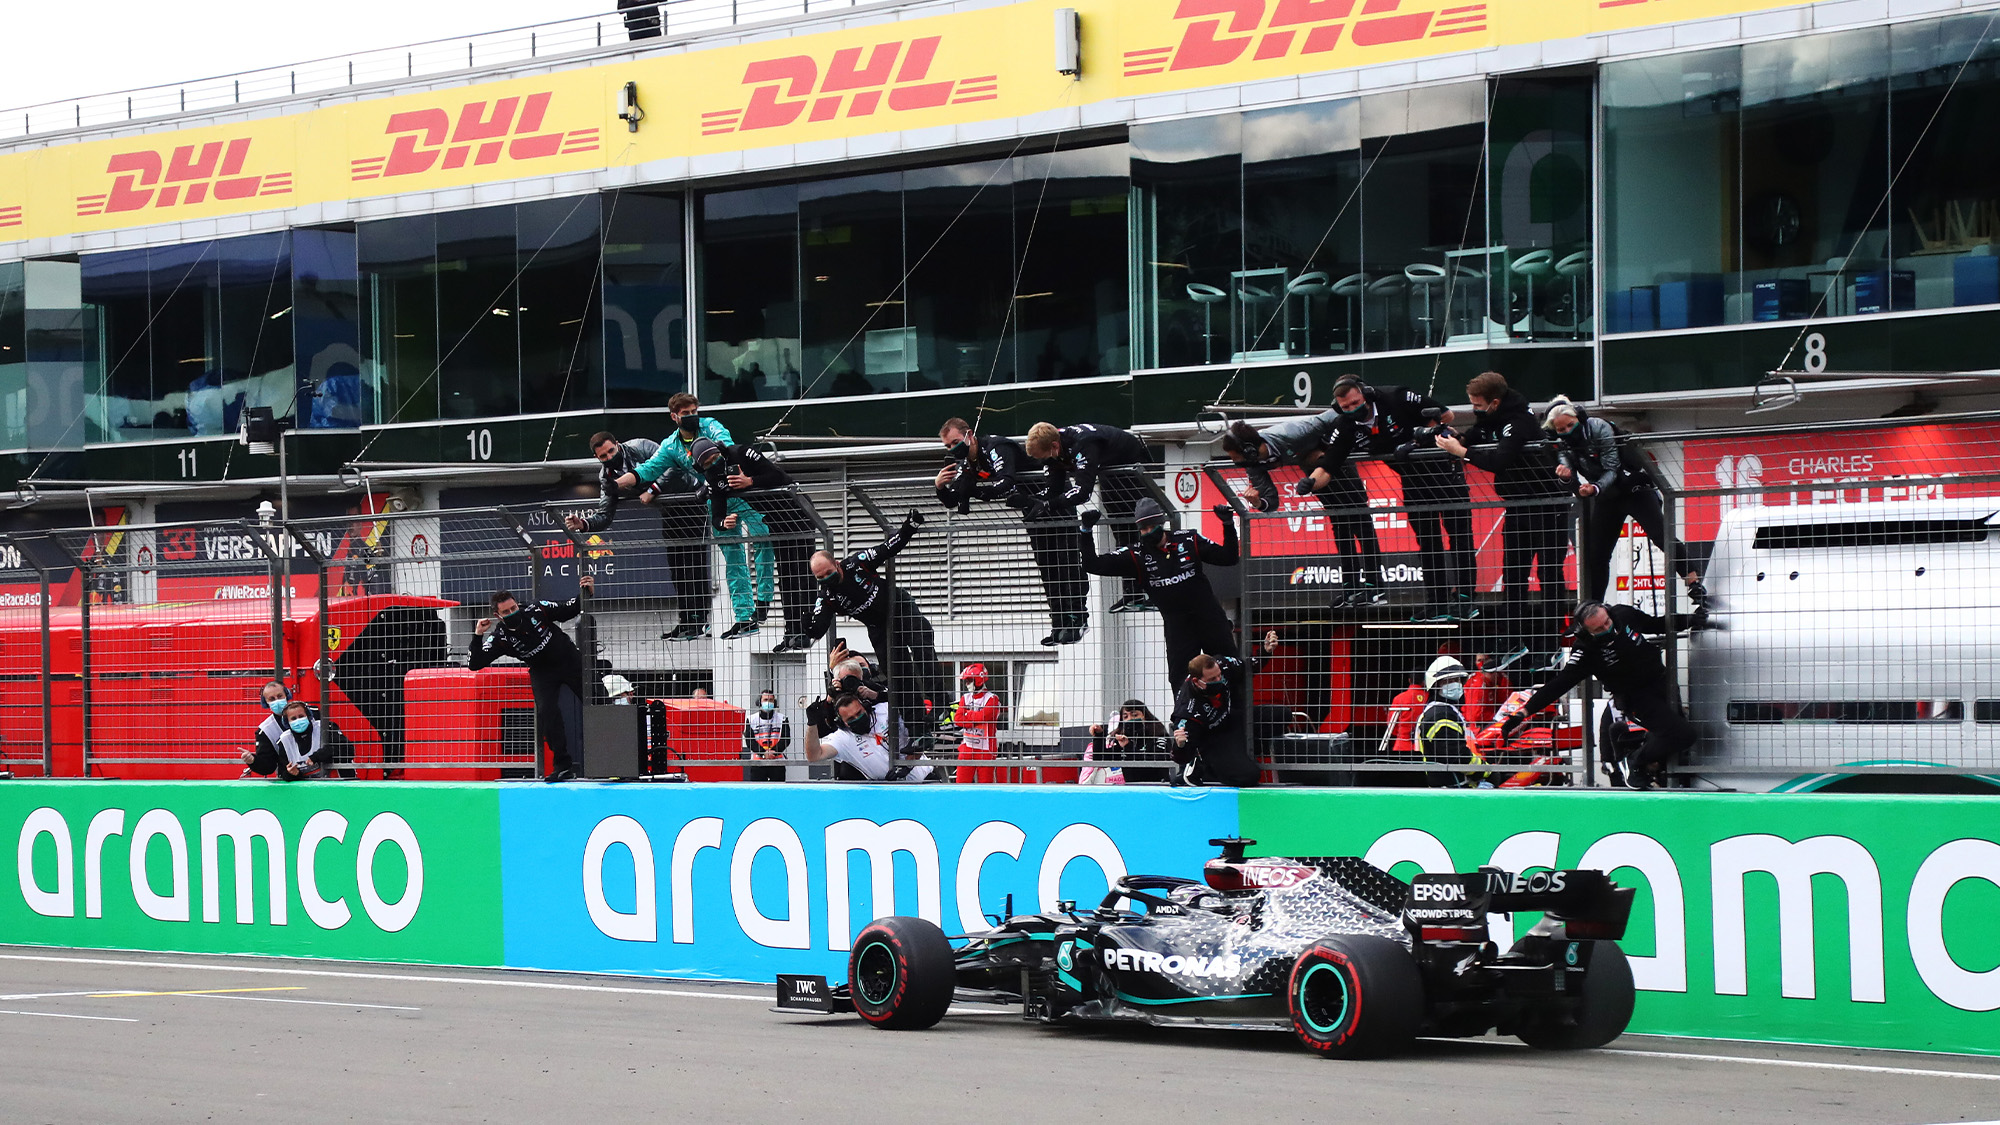 Lewis Hamilton crosses the finish line to win the 2020 F1 Eifel Grand Prix at the Nurburgring